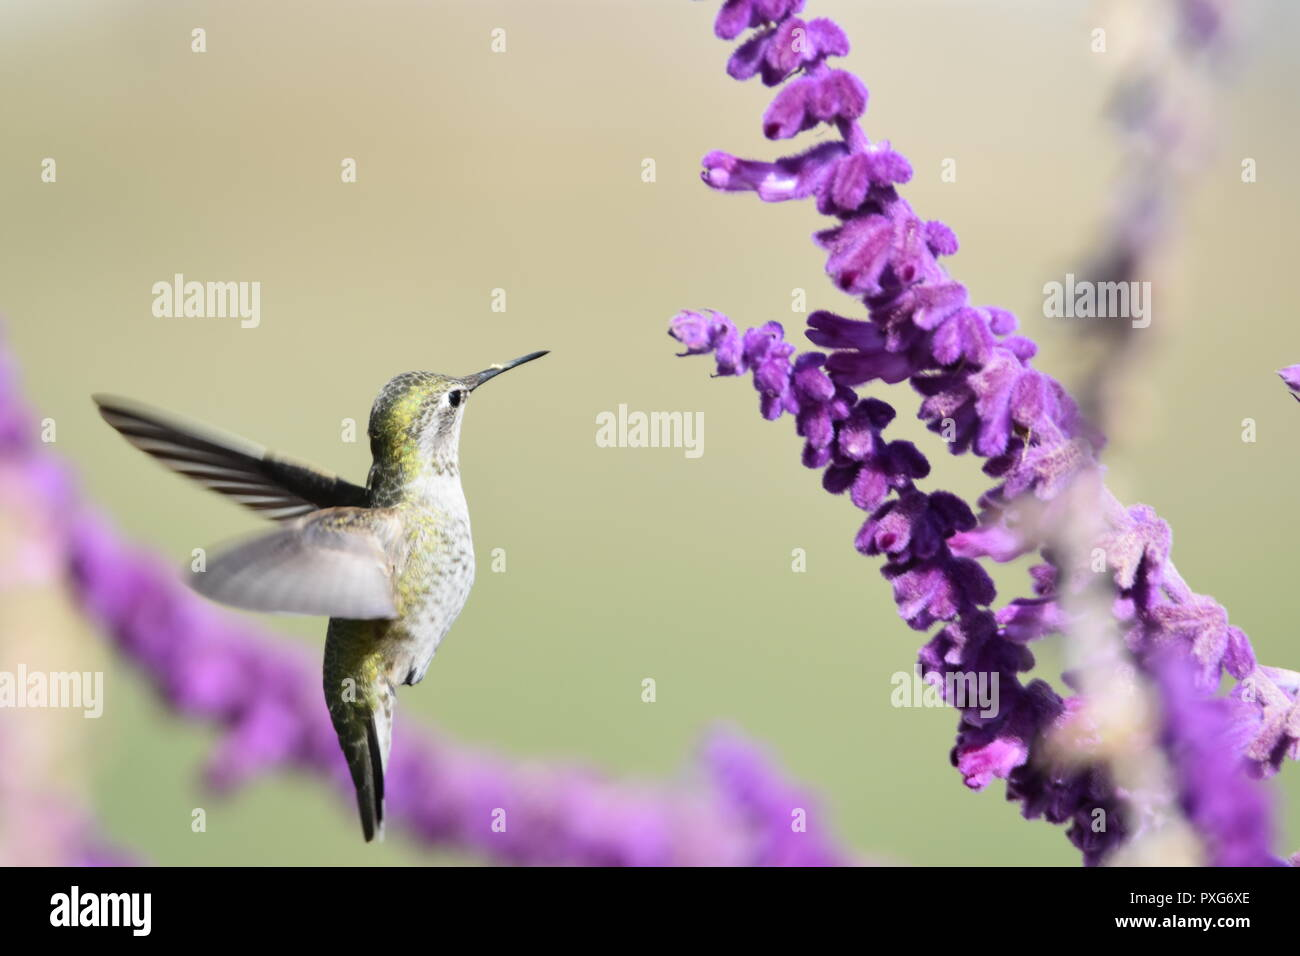 A Anna's Hummingbird feeding on nectar from a Mexican Bush Sage plant at the Audubon Canyon Ranch preserve in Marin County, CA. - Stock Image